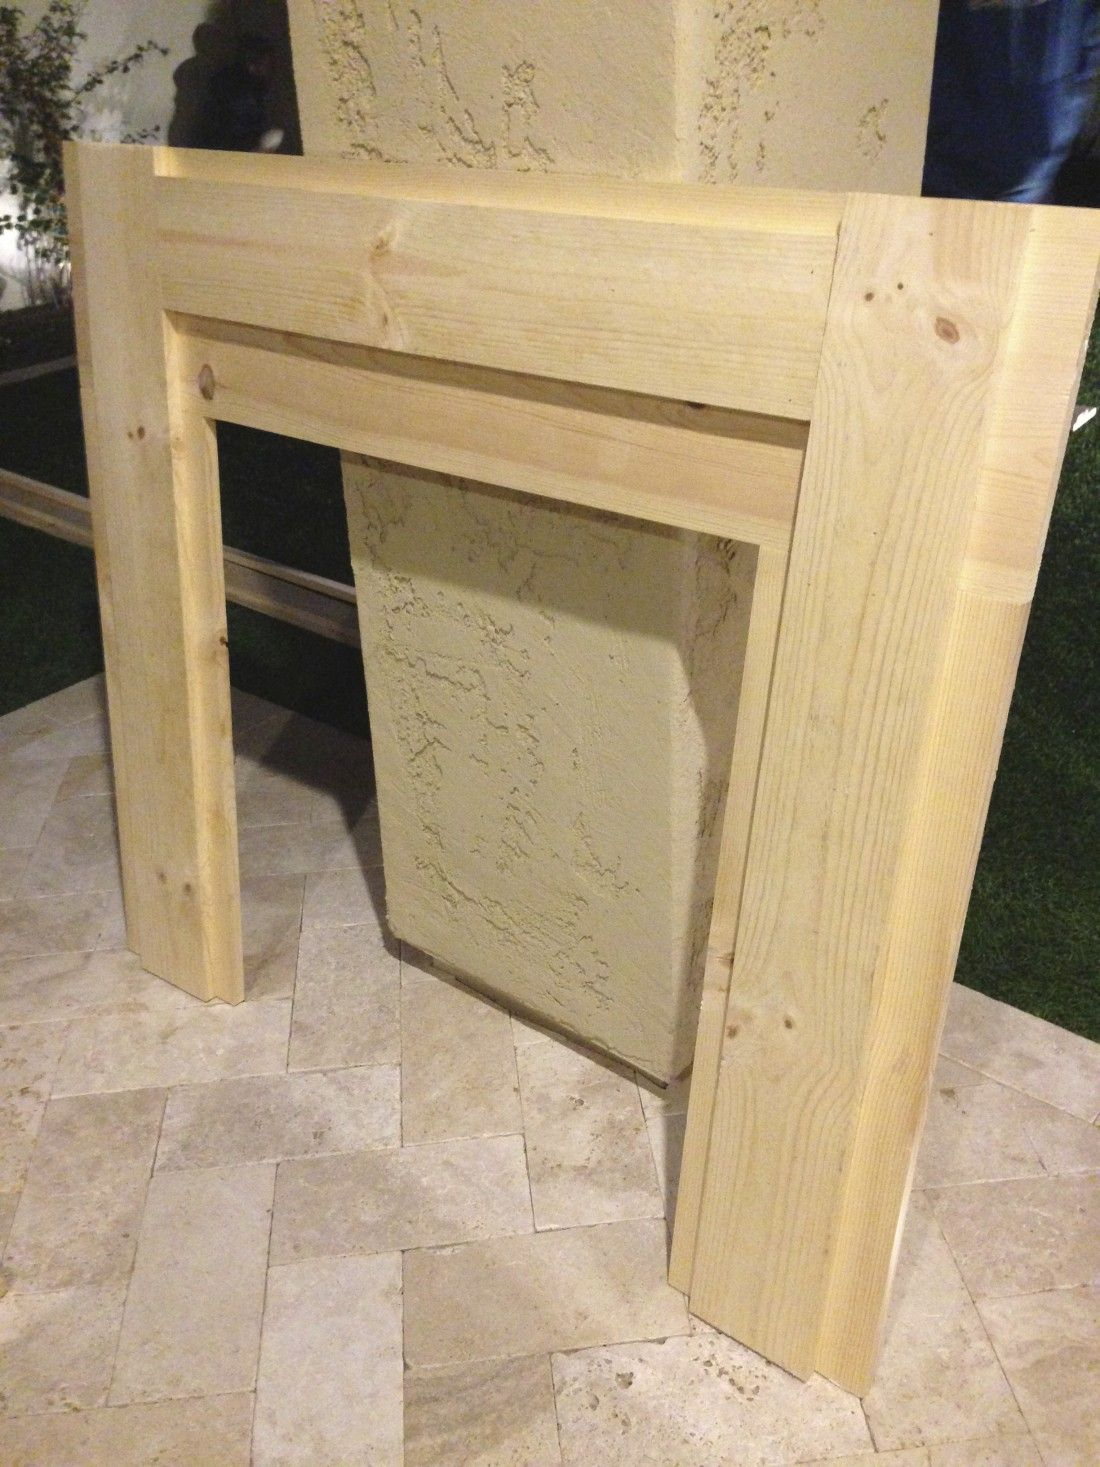 Diy faux fireplace u mantel faux fireplace faux fireplace mantels